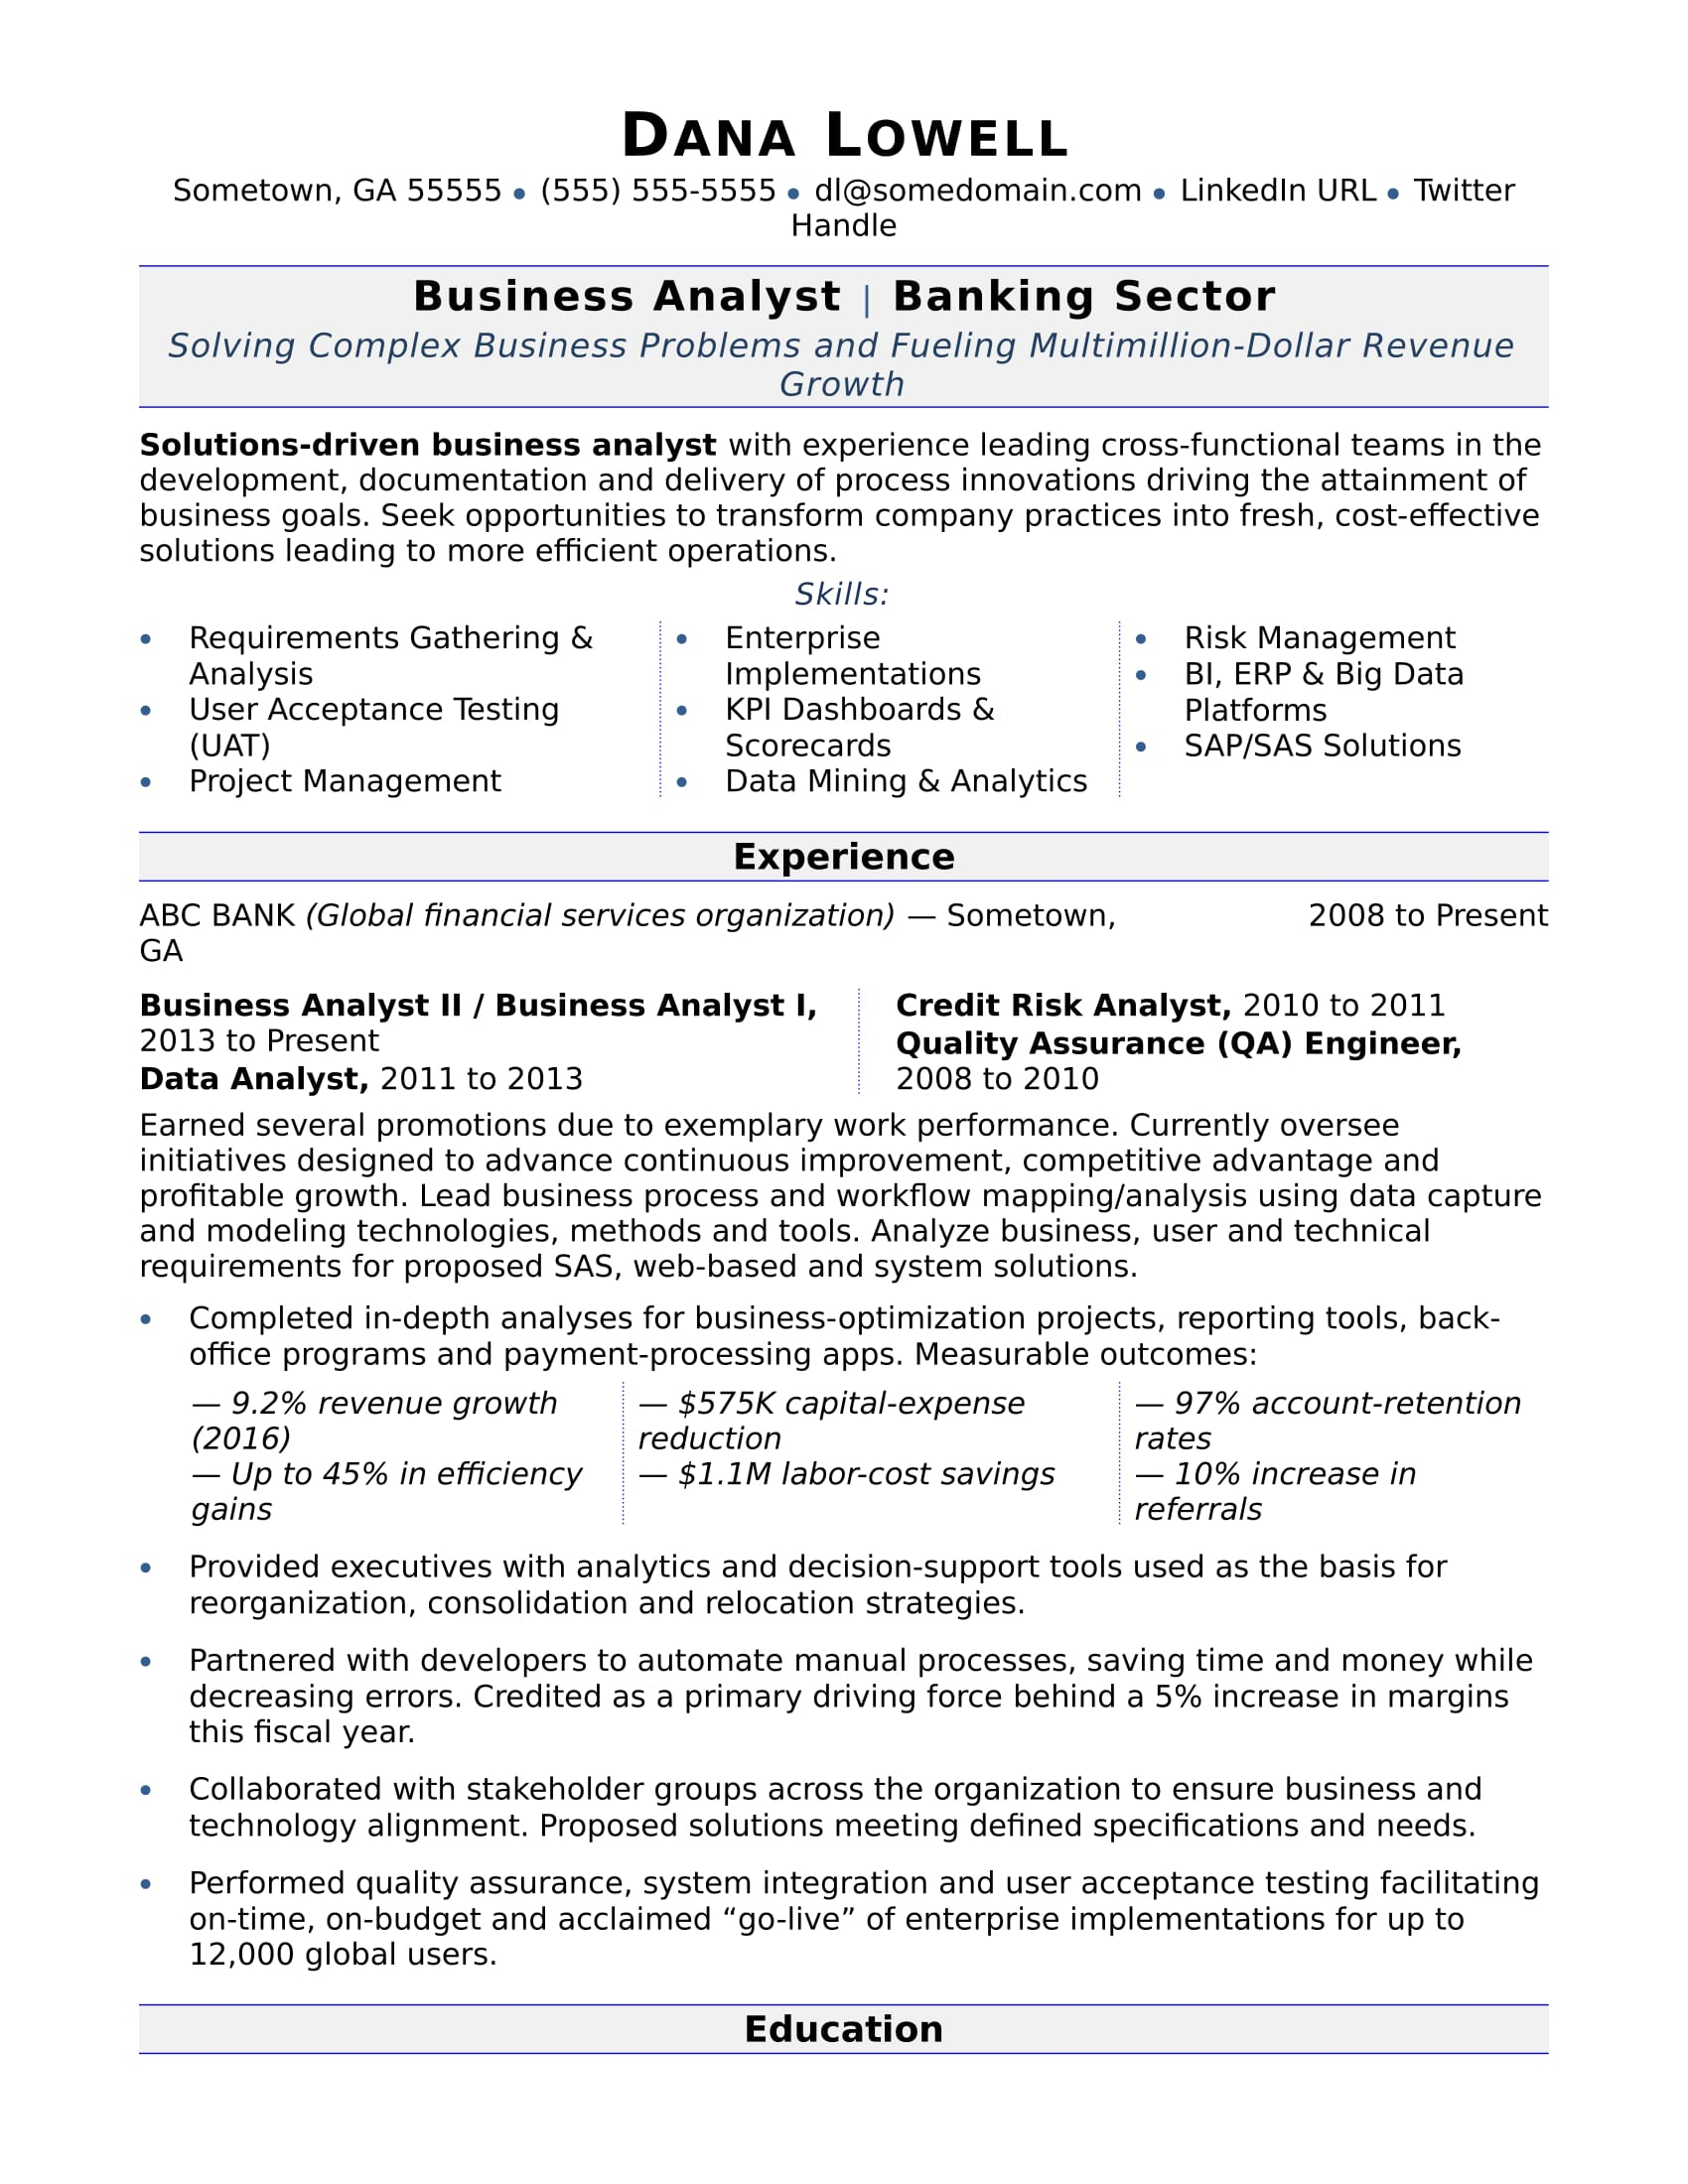 sap business analyst resume examples